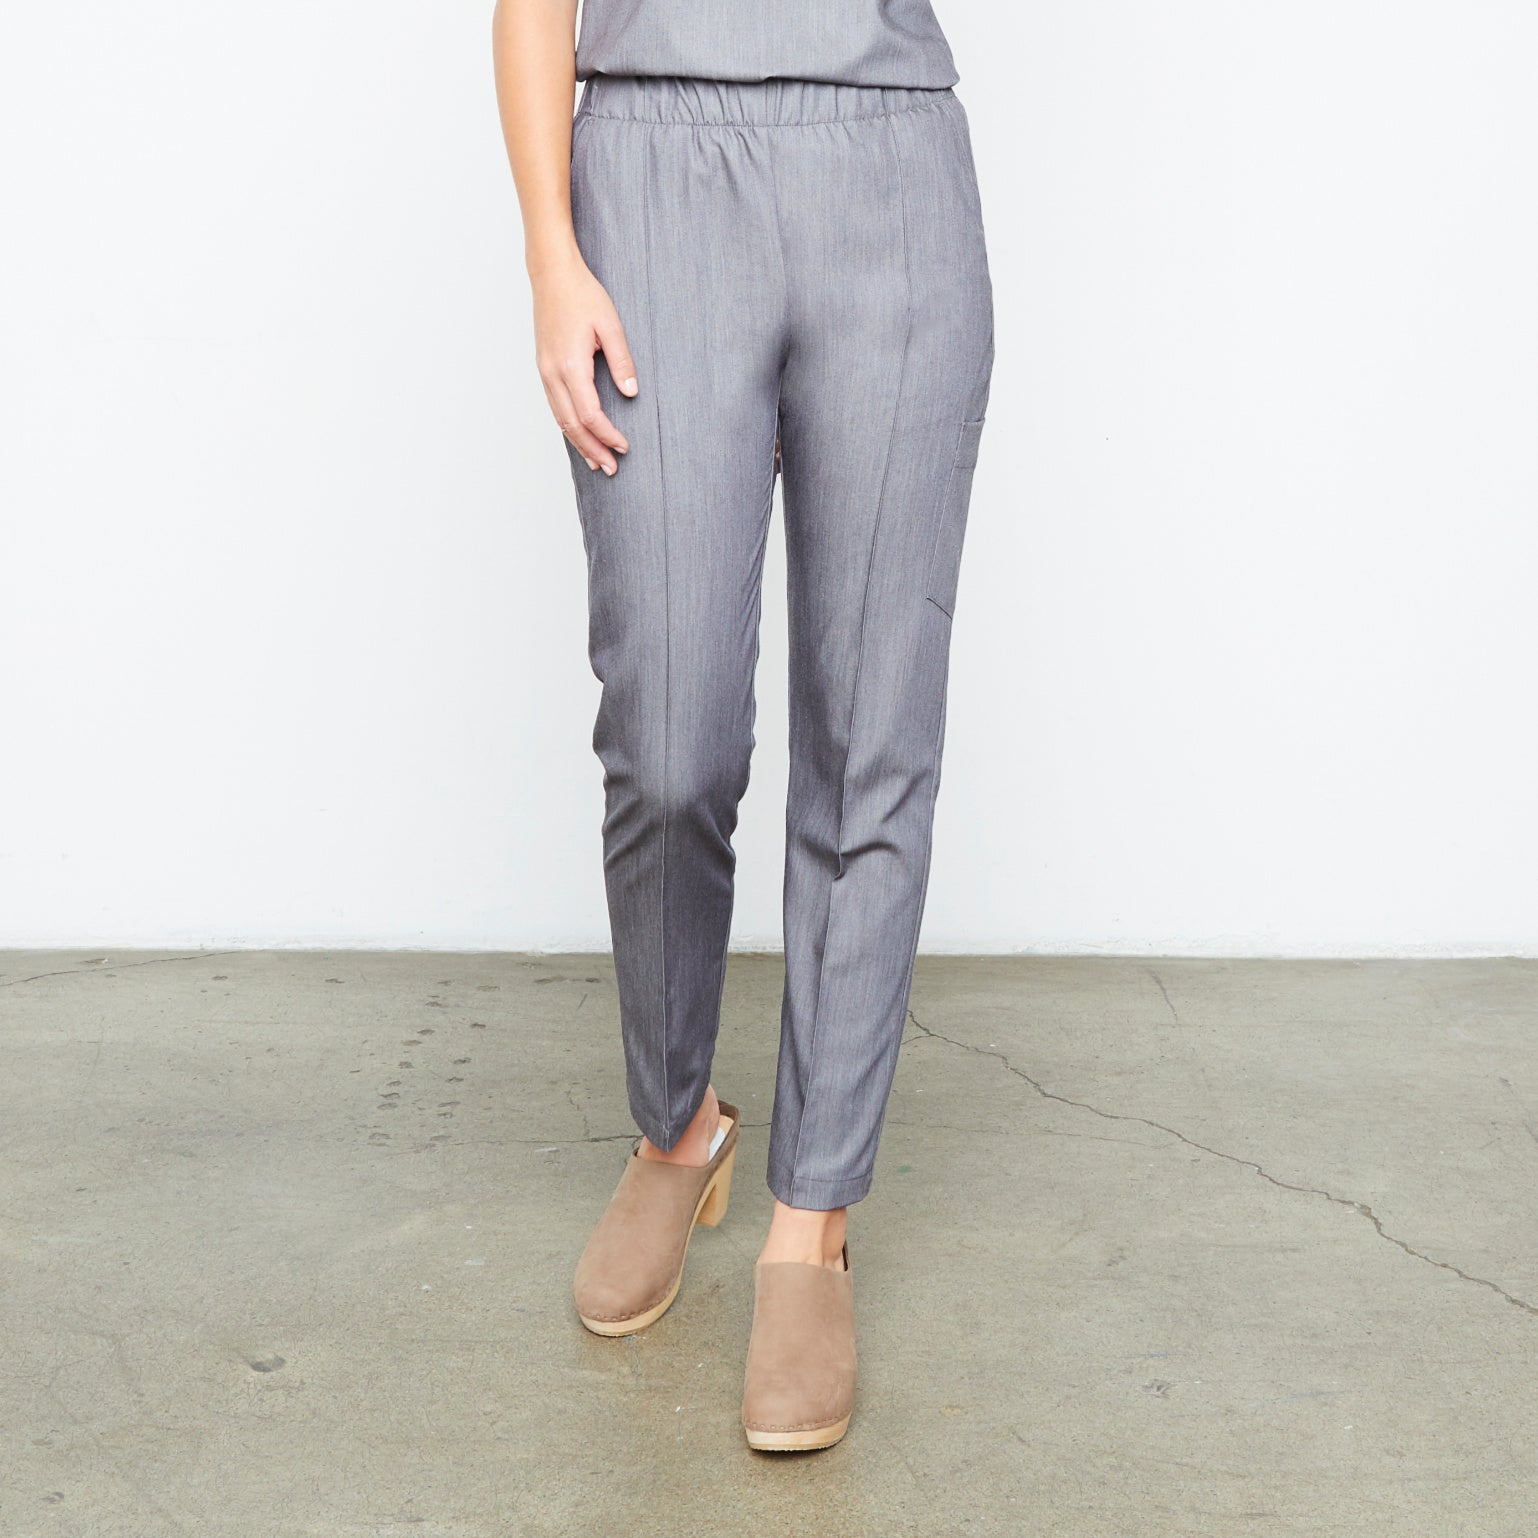 Harley Pant (Granite Smoothie) XXS | Fabled makes beautiful high quality and chic scrub pants for women. Scrubs fashion for women doctors and healthcare professionals.